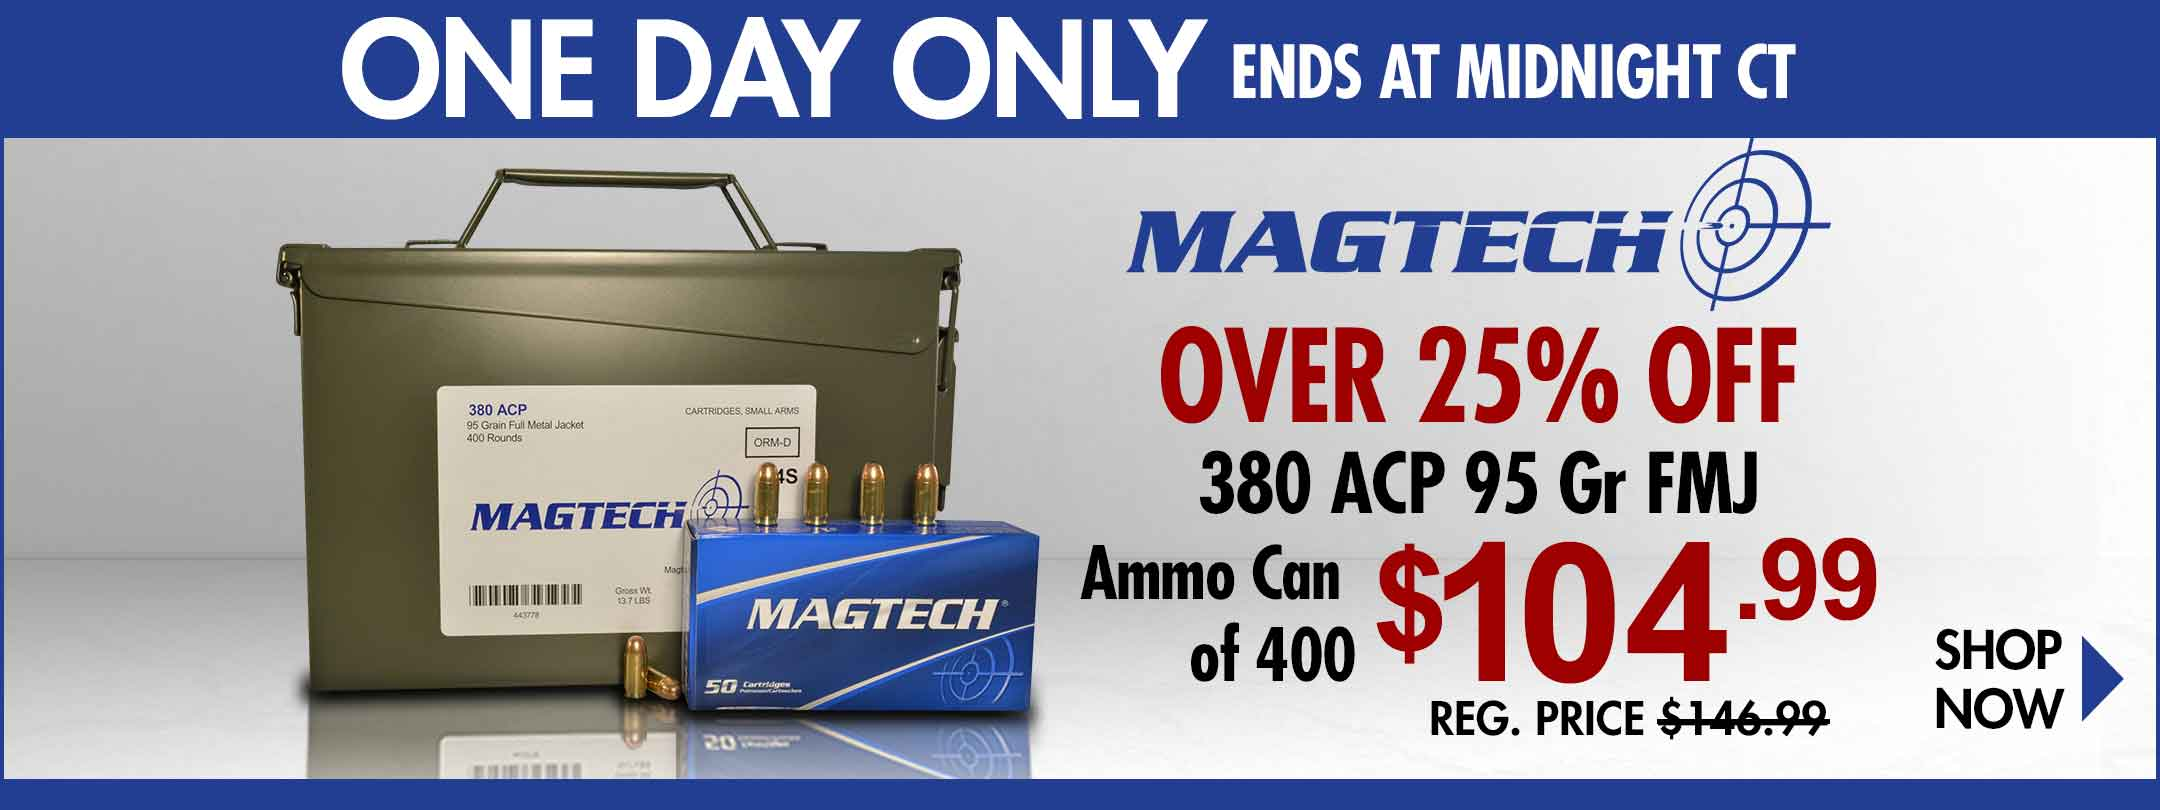 Save on Magtech 380 Ammo!